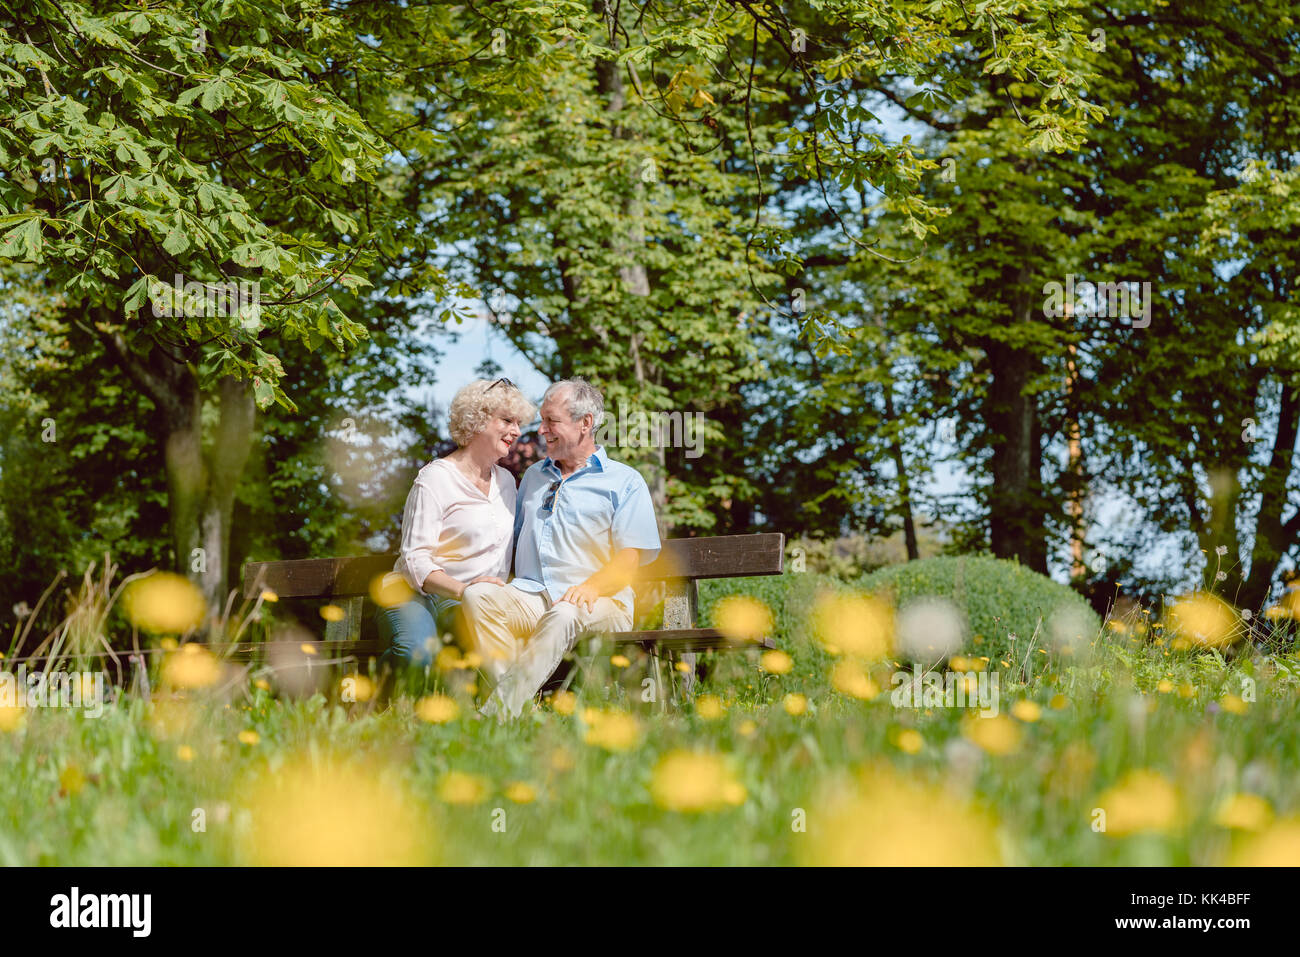 Romantic senior couple in love dating outdoors in an idyllic par - Stock Image